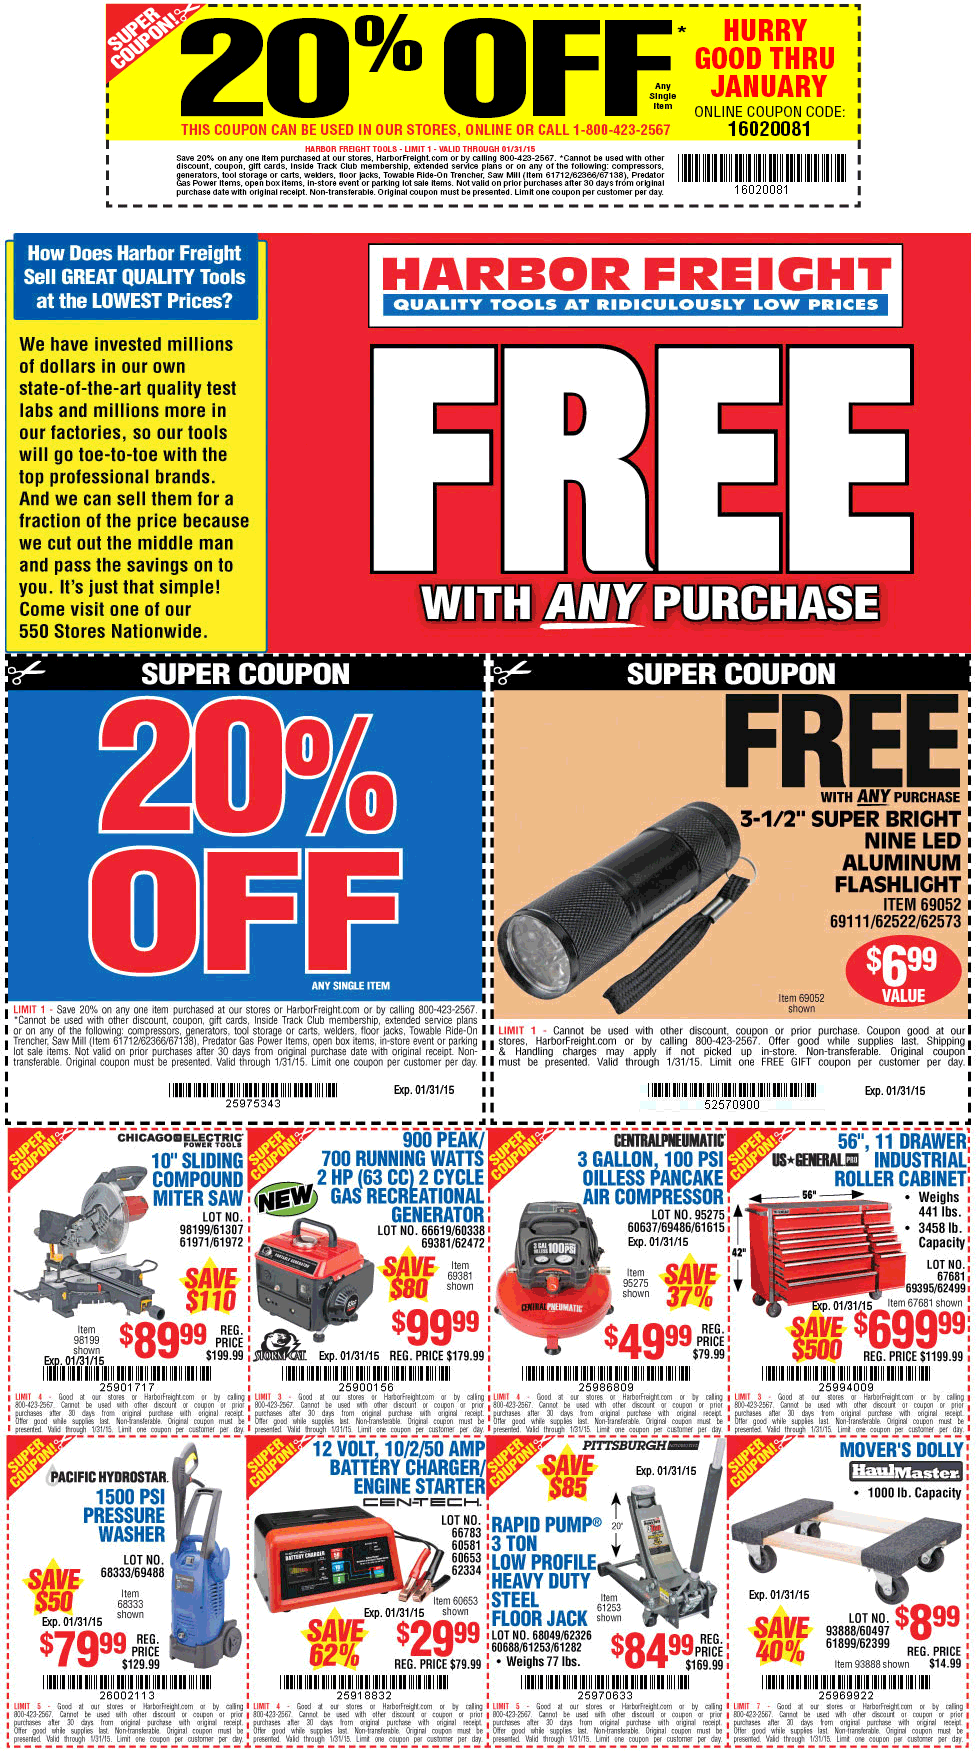 Harbor Freight Coupon April 2019 20% off a single item at Harbor Freight Tools, or online via promo code 16020081